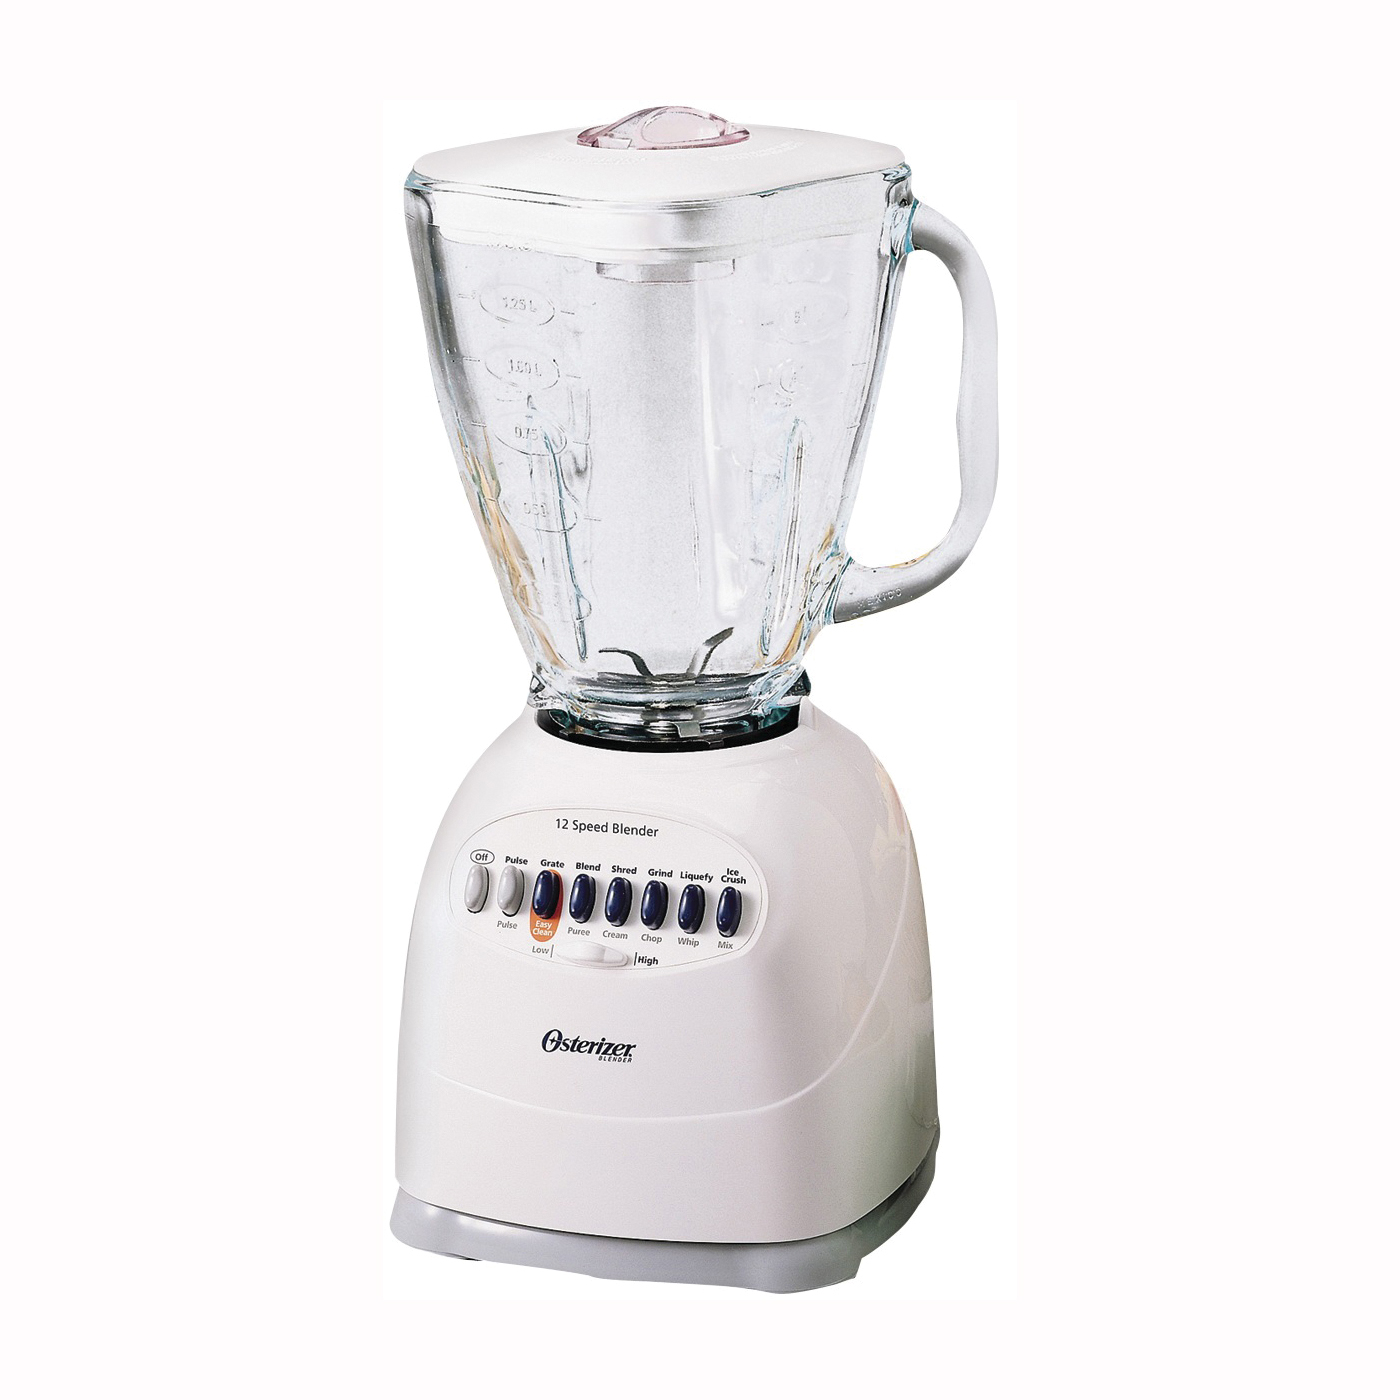 Picture of Oster Simple Blend Classic Series 006642-000-N01 Blender, 40 oz Bowl, 450 W, 12 -Speed, ABS/Glass, White